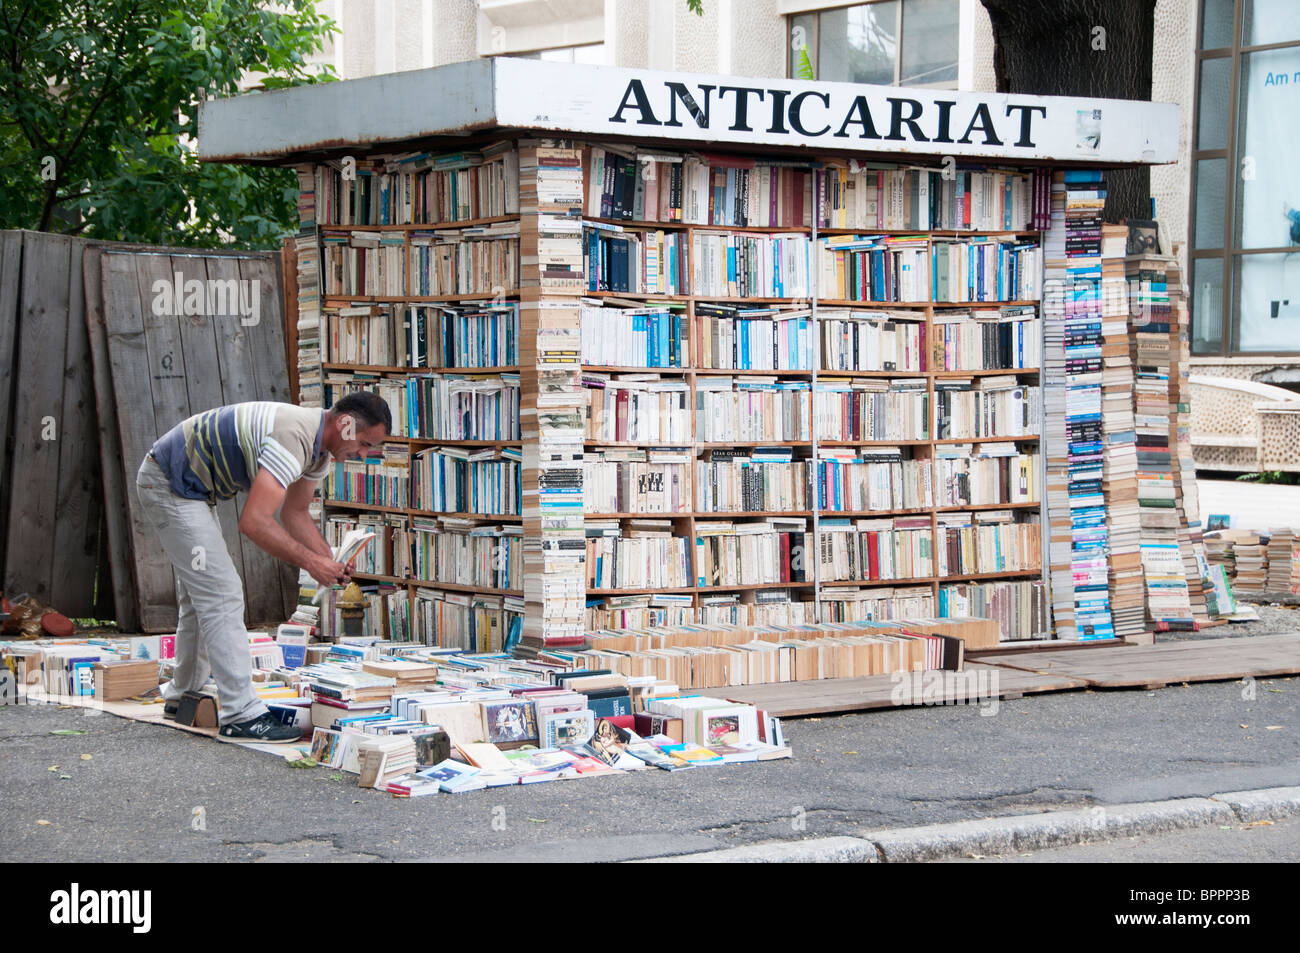 Second hand bookseller with piles of books he is sorting - Stock Image